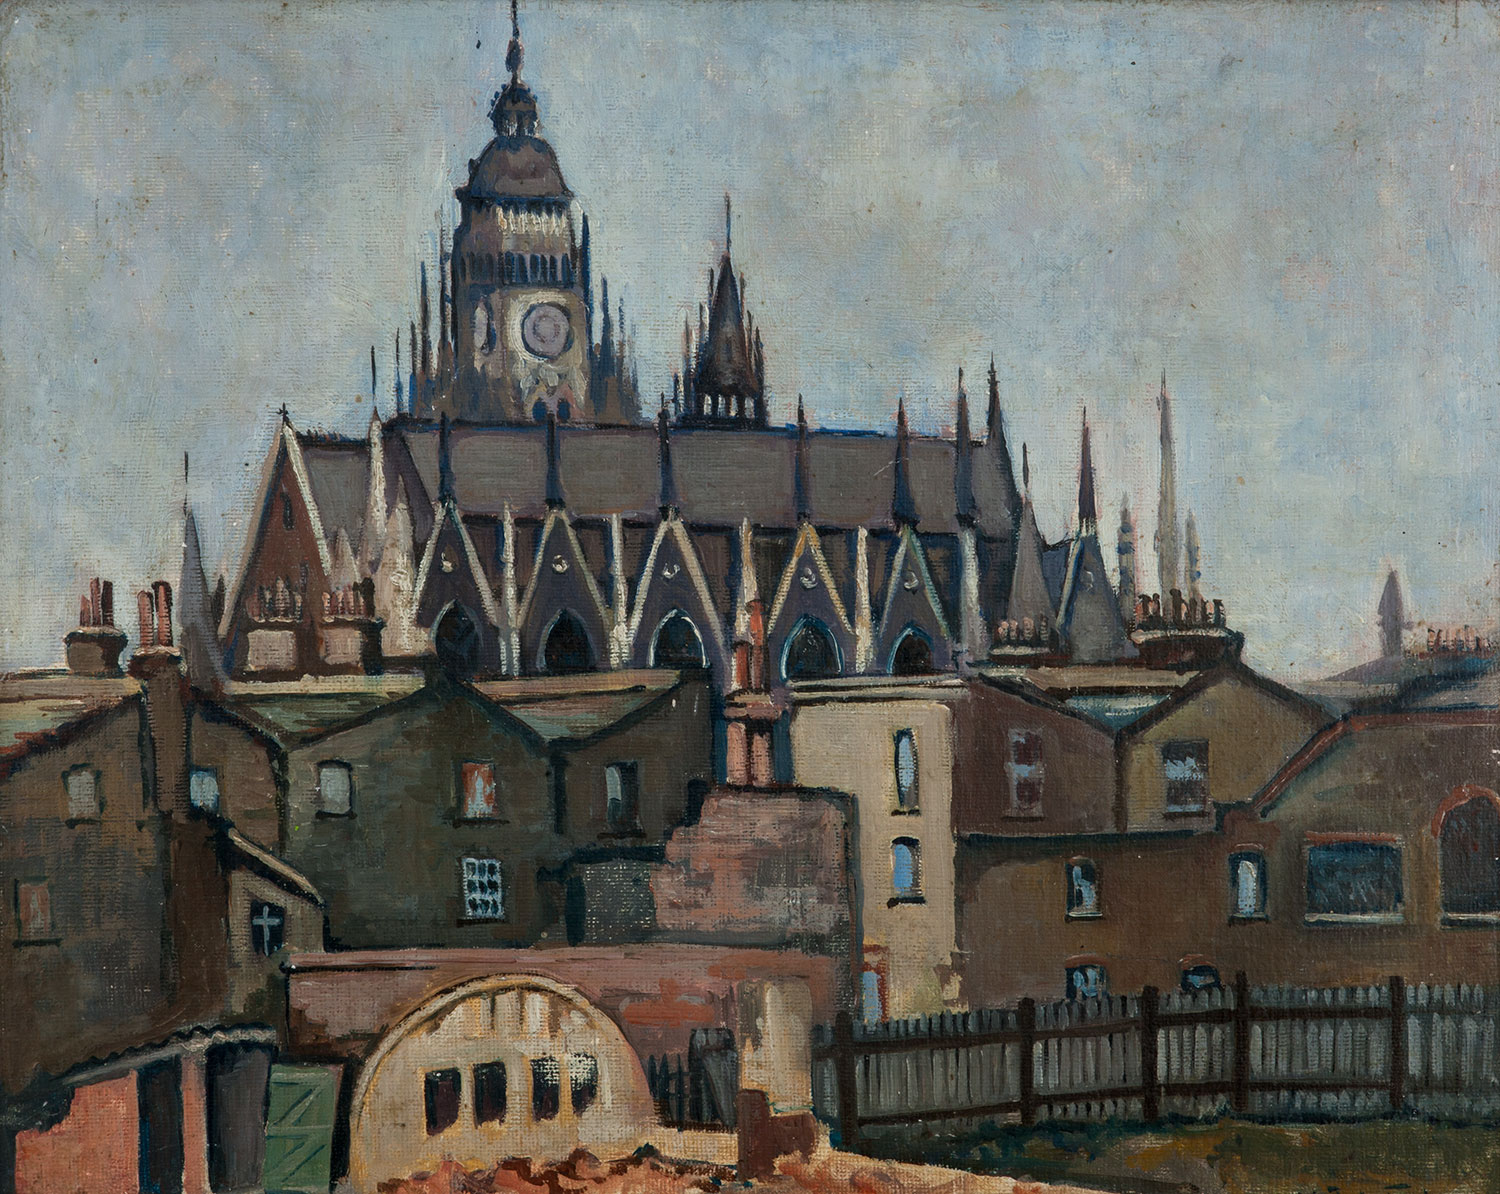 View of the now demolished Columbia Market in oils